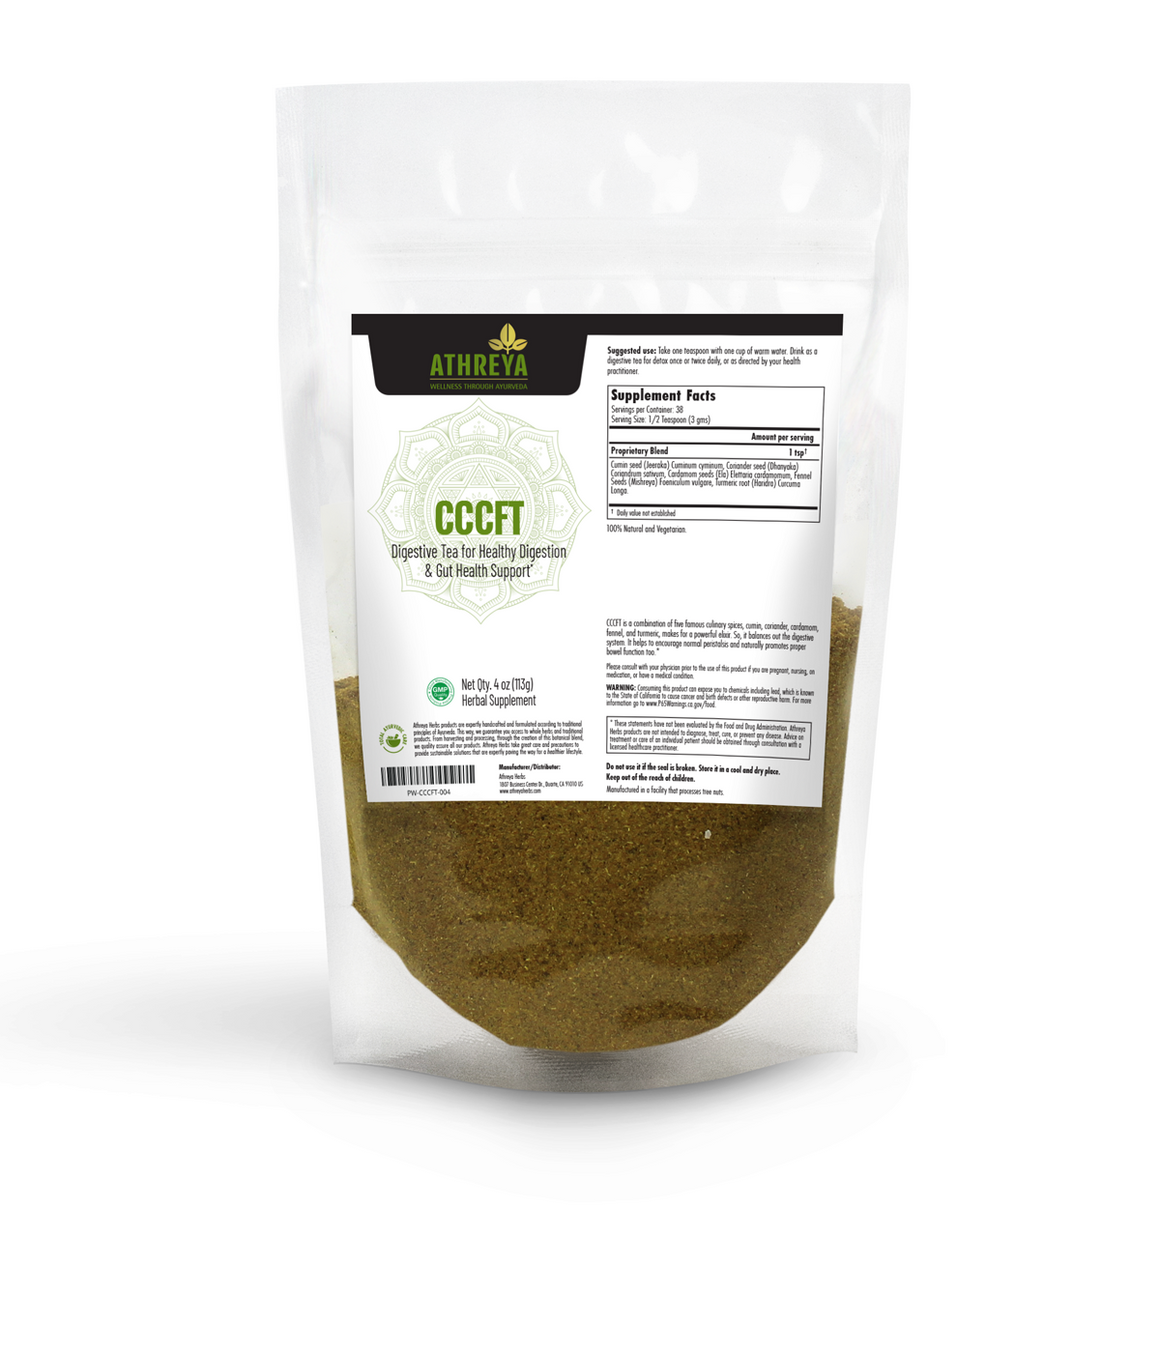 Healthy Digestion Tea Powder (CCCFT)